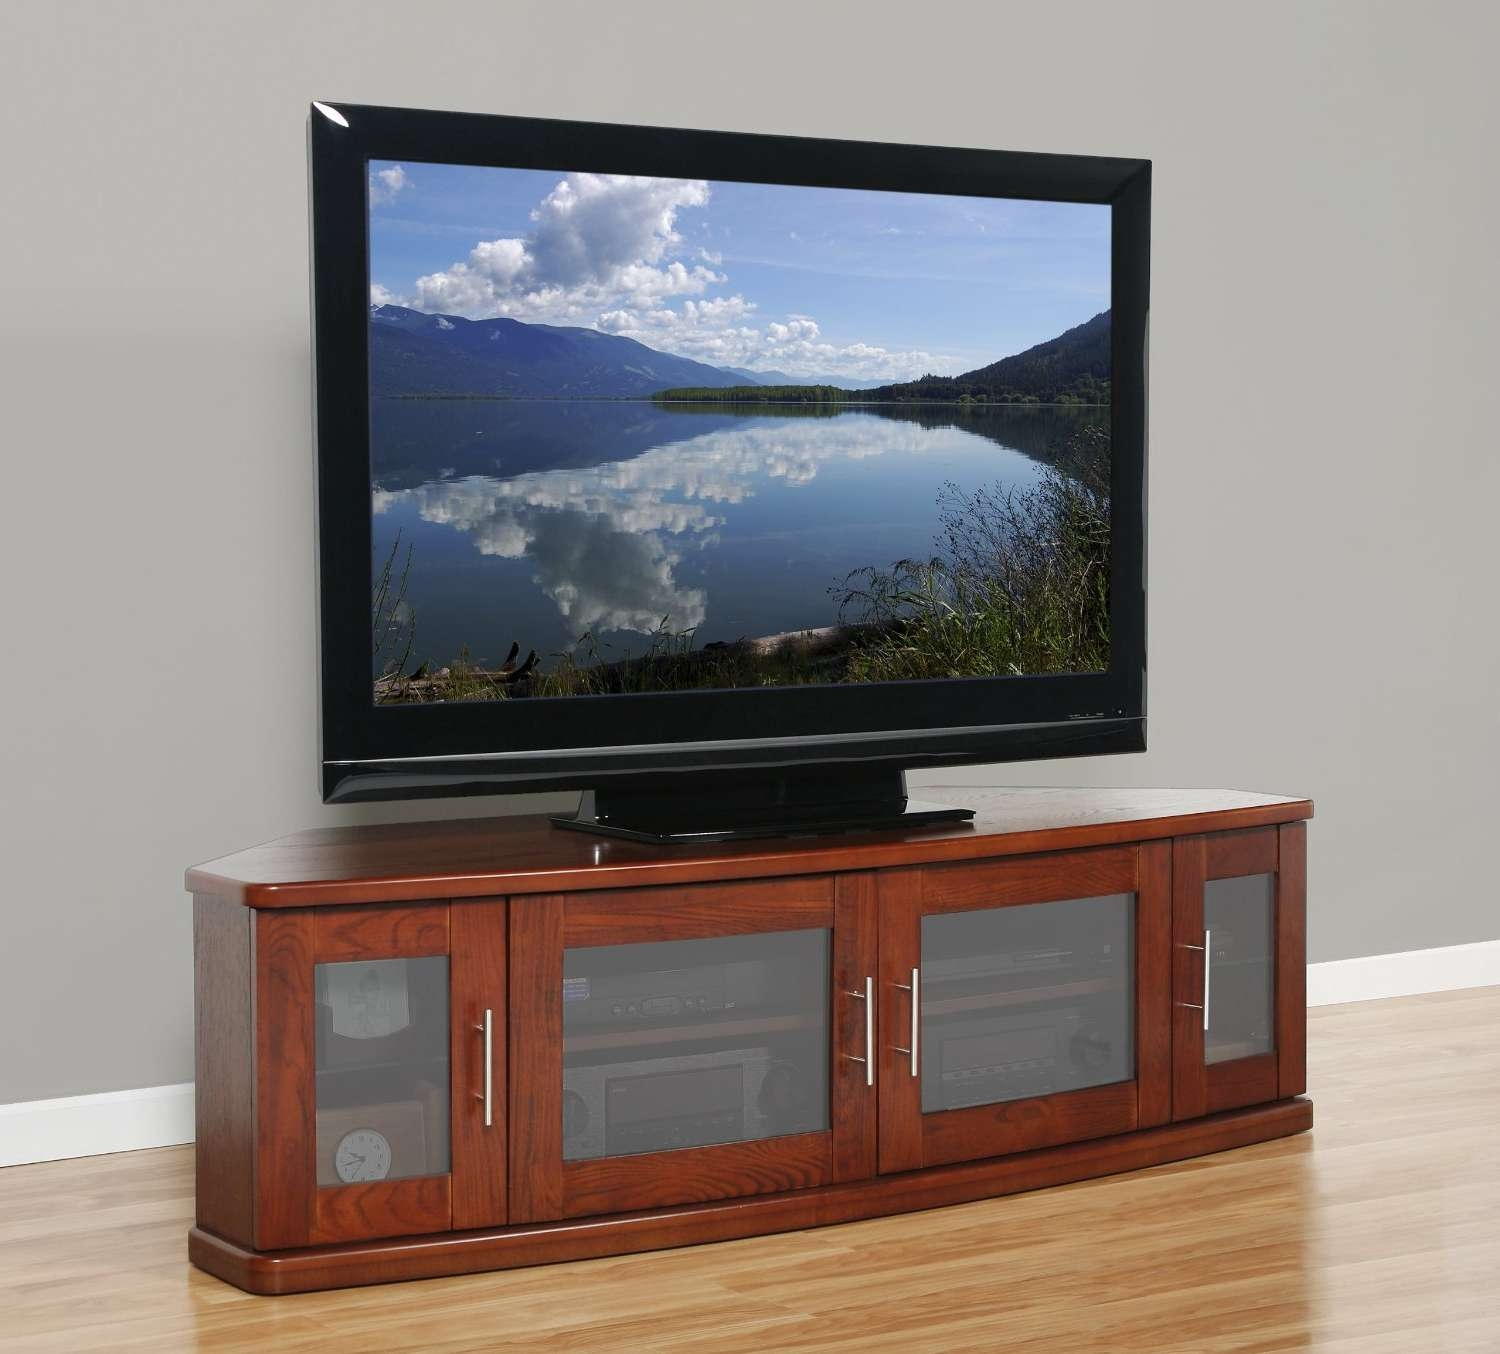 Curved Brown Figured Cherry Wood Low Cabinet For Tv Stand With 4 Regarding Wooden Tv Cabinets With Glass Doors (View 10 of 20)